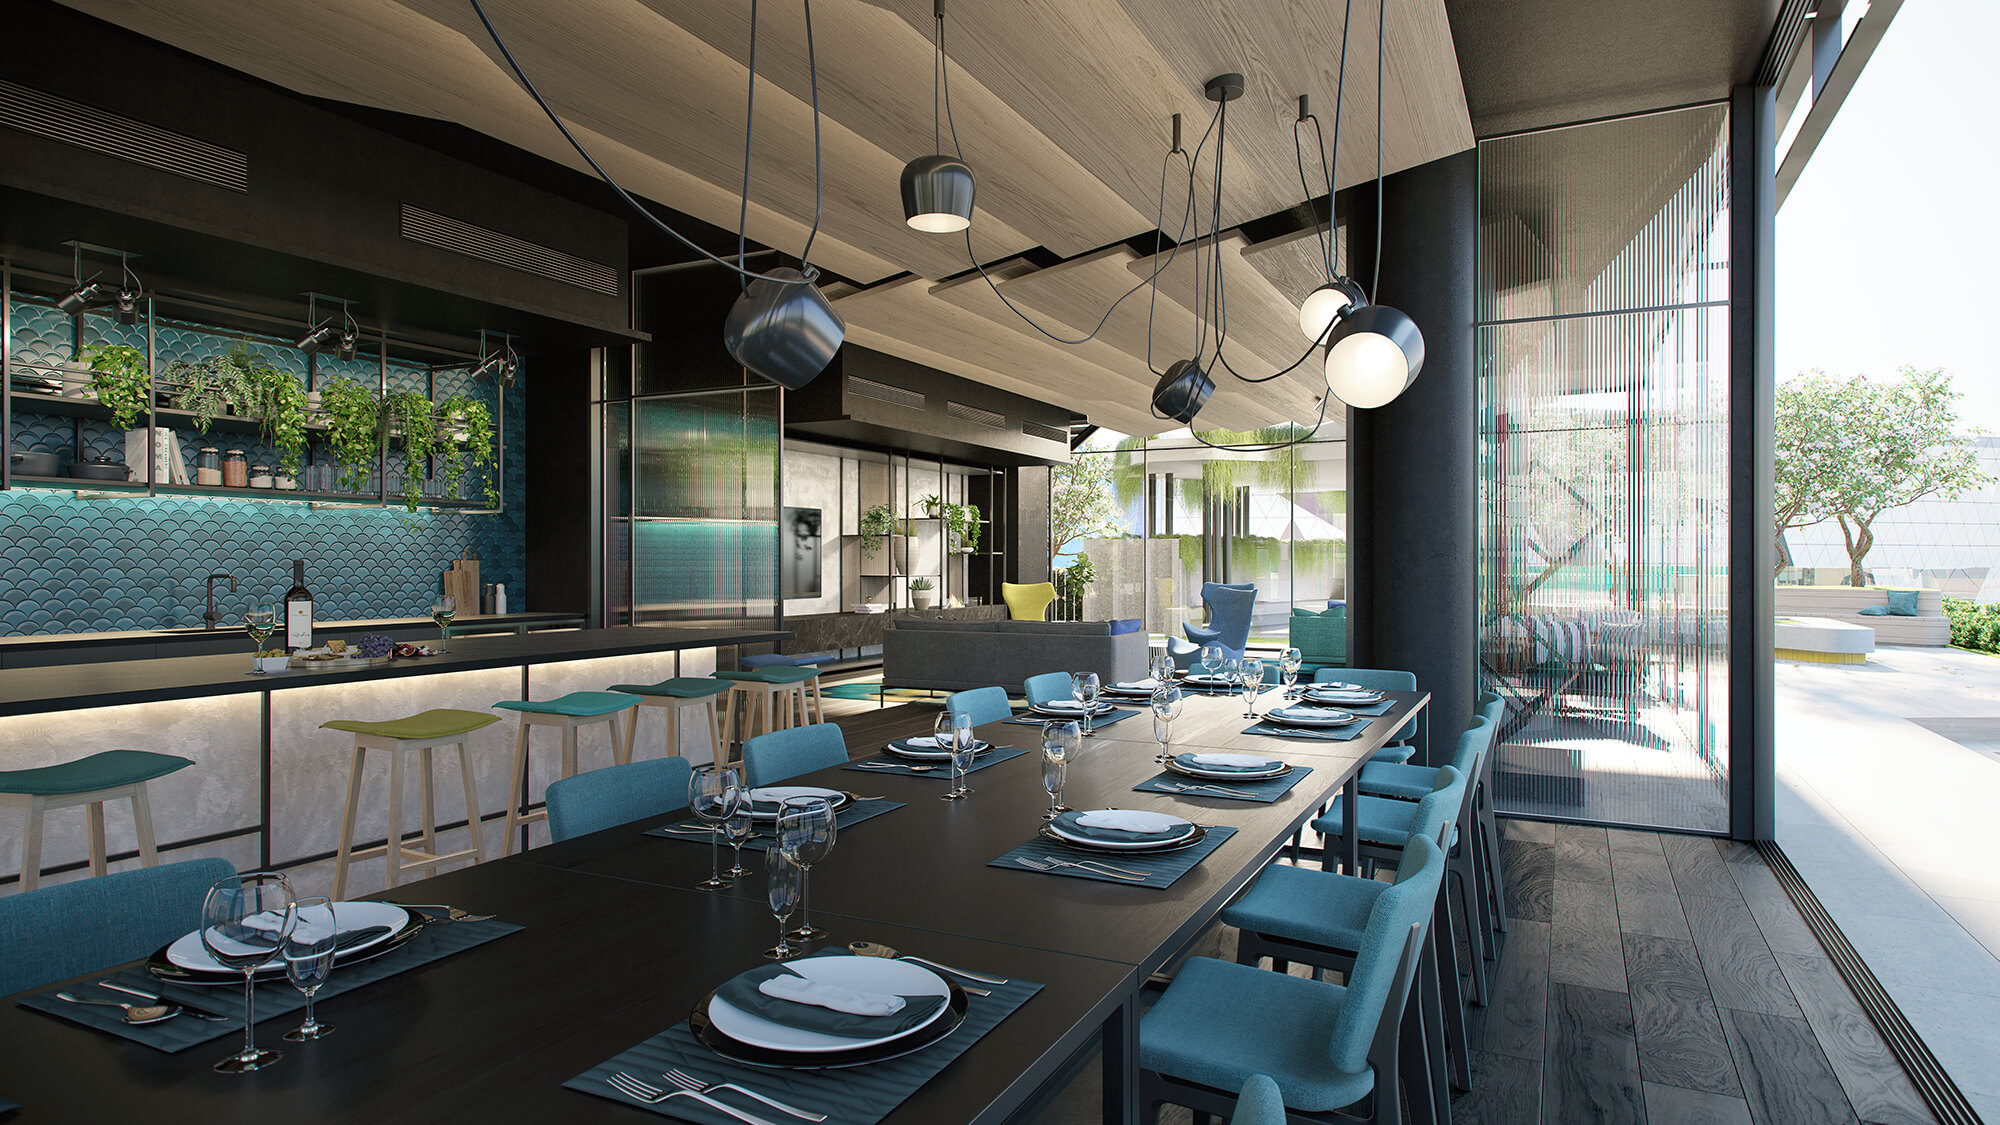 View of Perth Hub dining area with long dining table setting